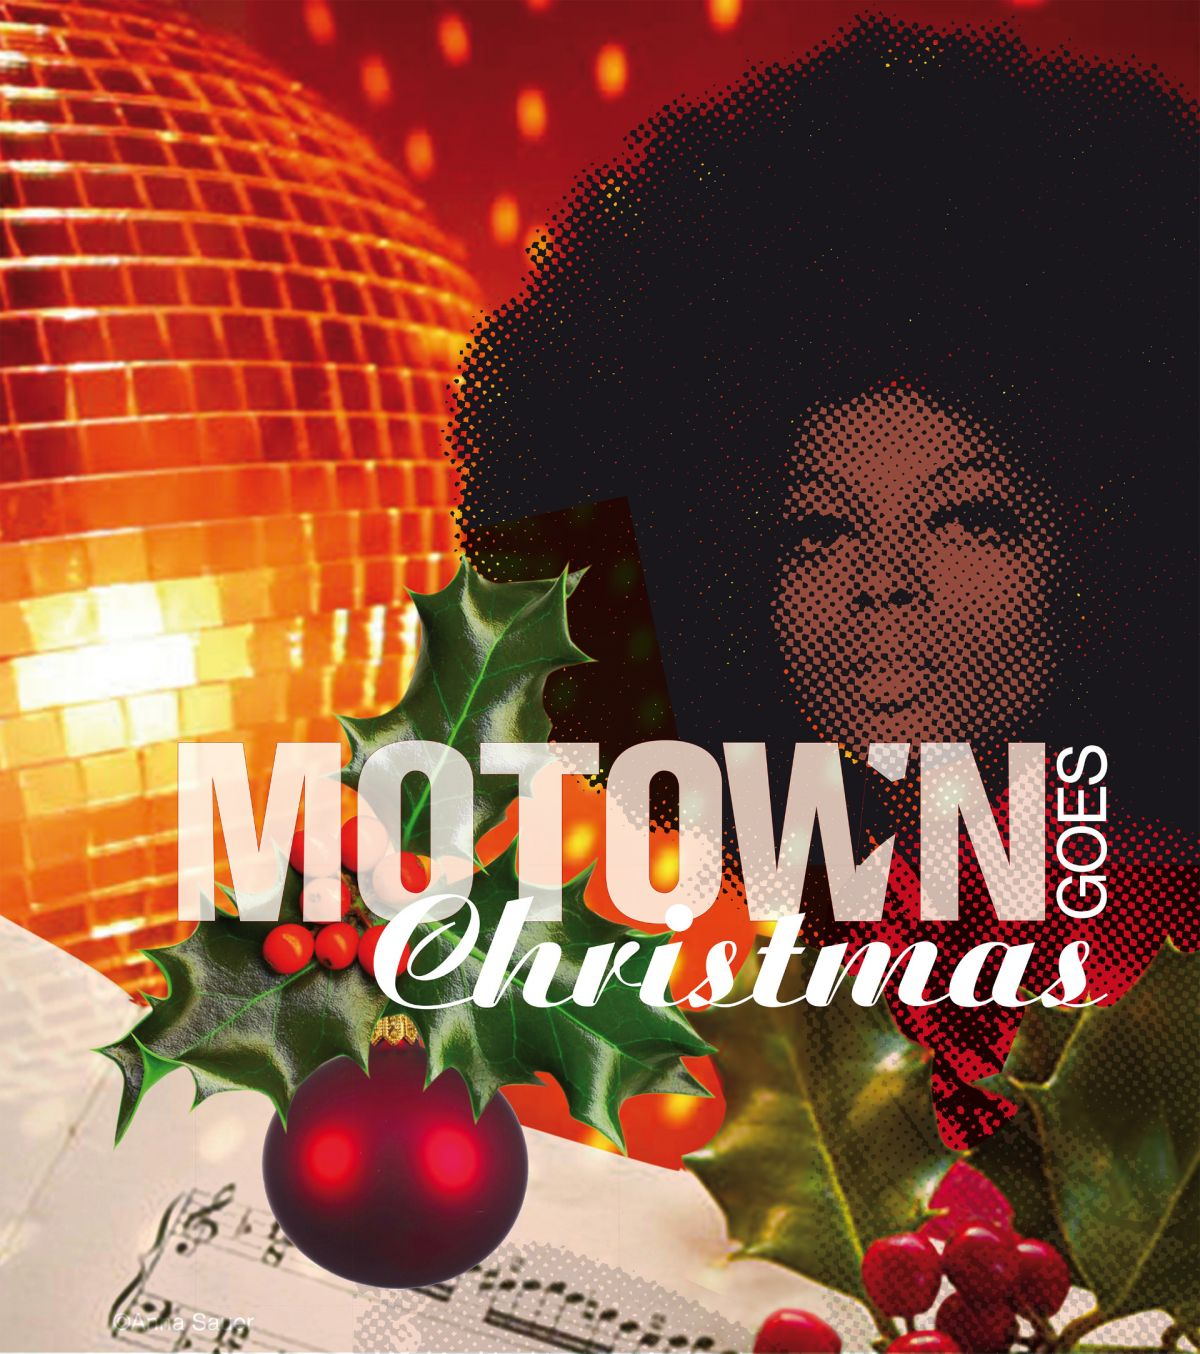 Motown goes Christmans